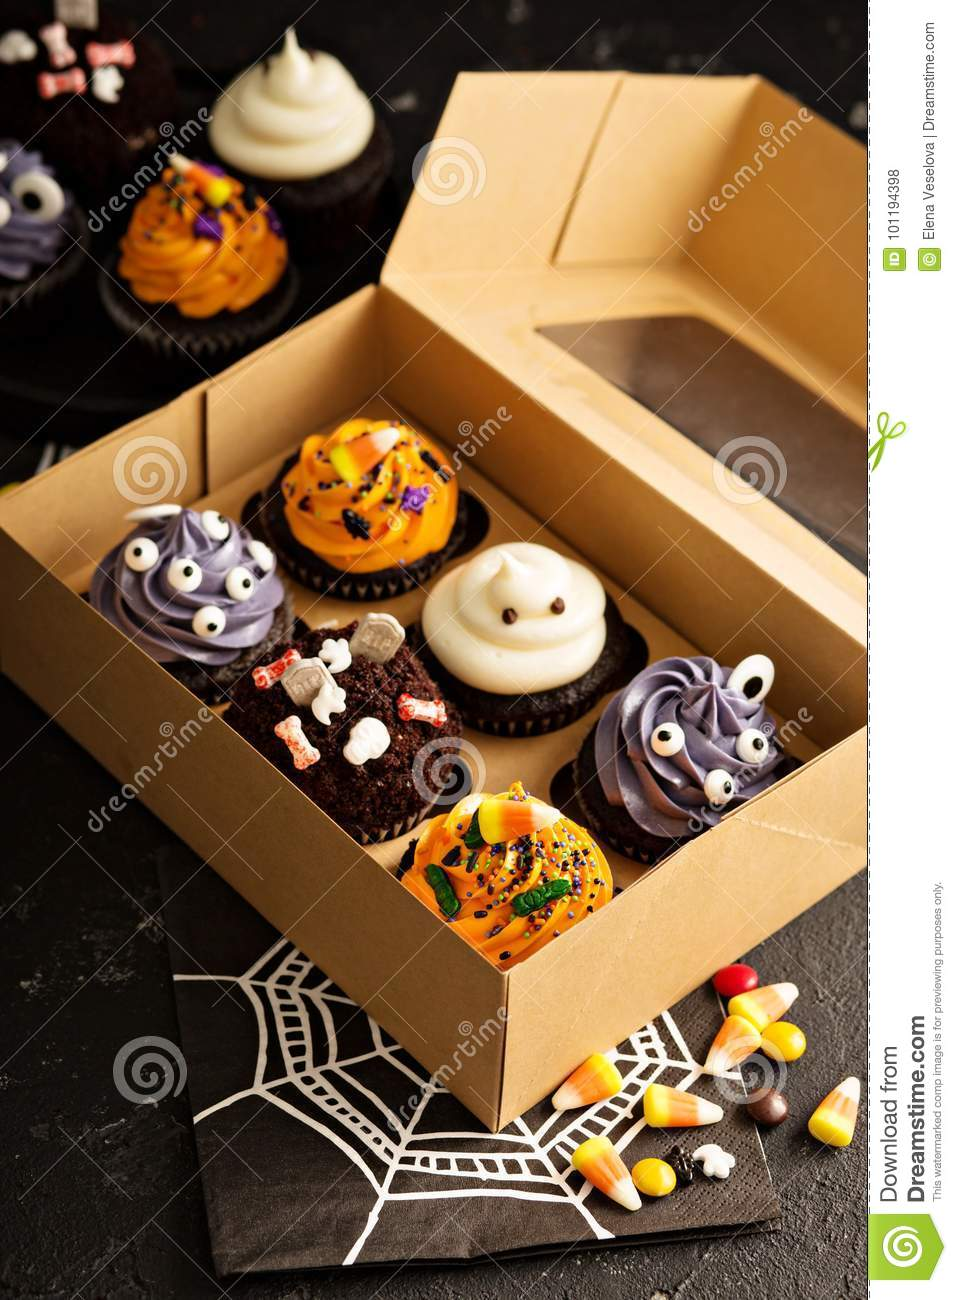 set of festive halloween cupcakes and treats decorated with sprinkles and candy in a box